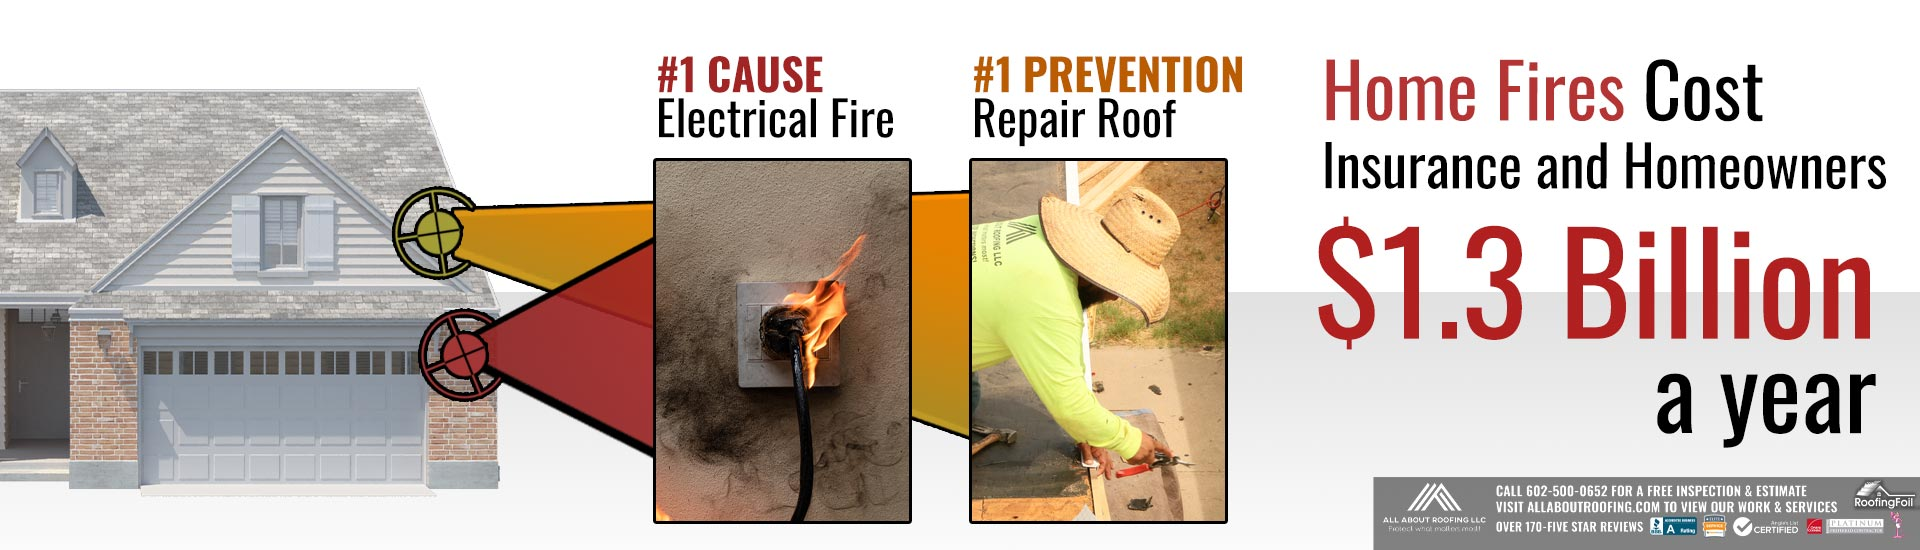 Number 1 Cause for Home Fires and Number 1 Prevention Tip